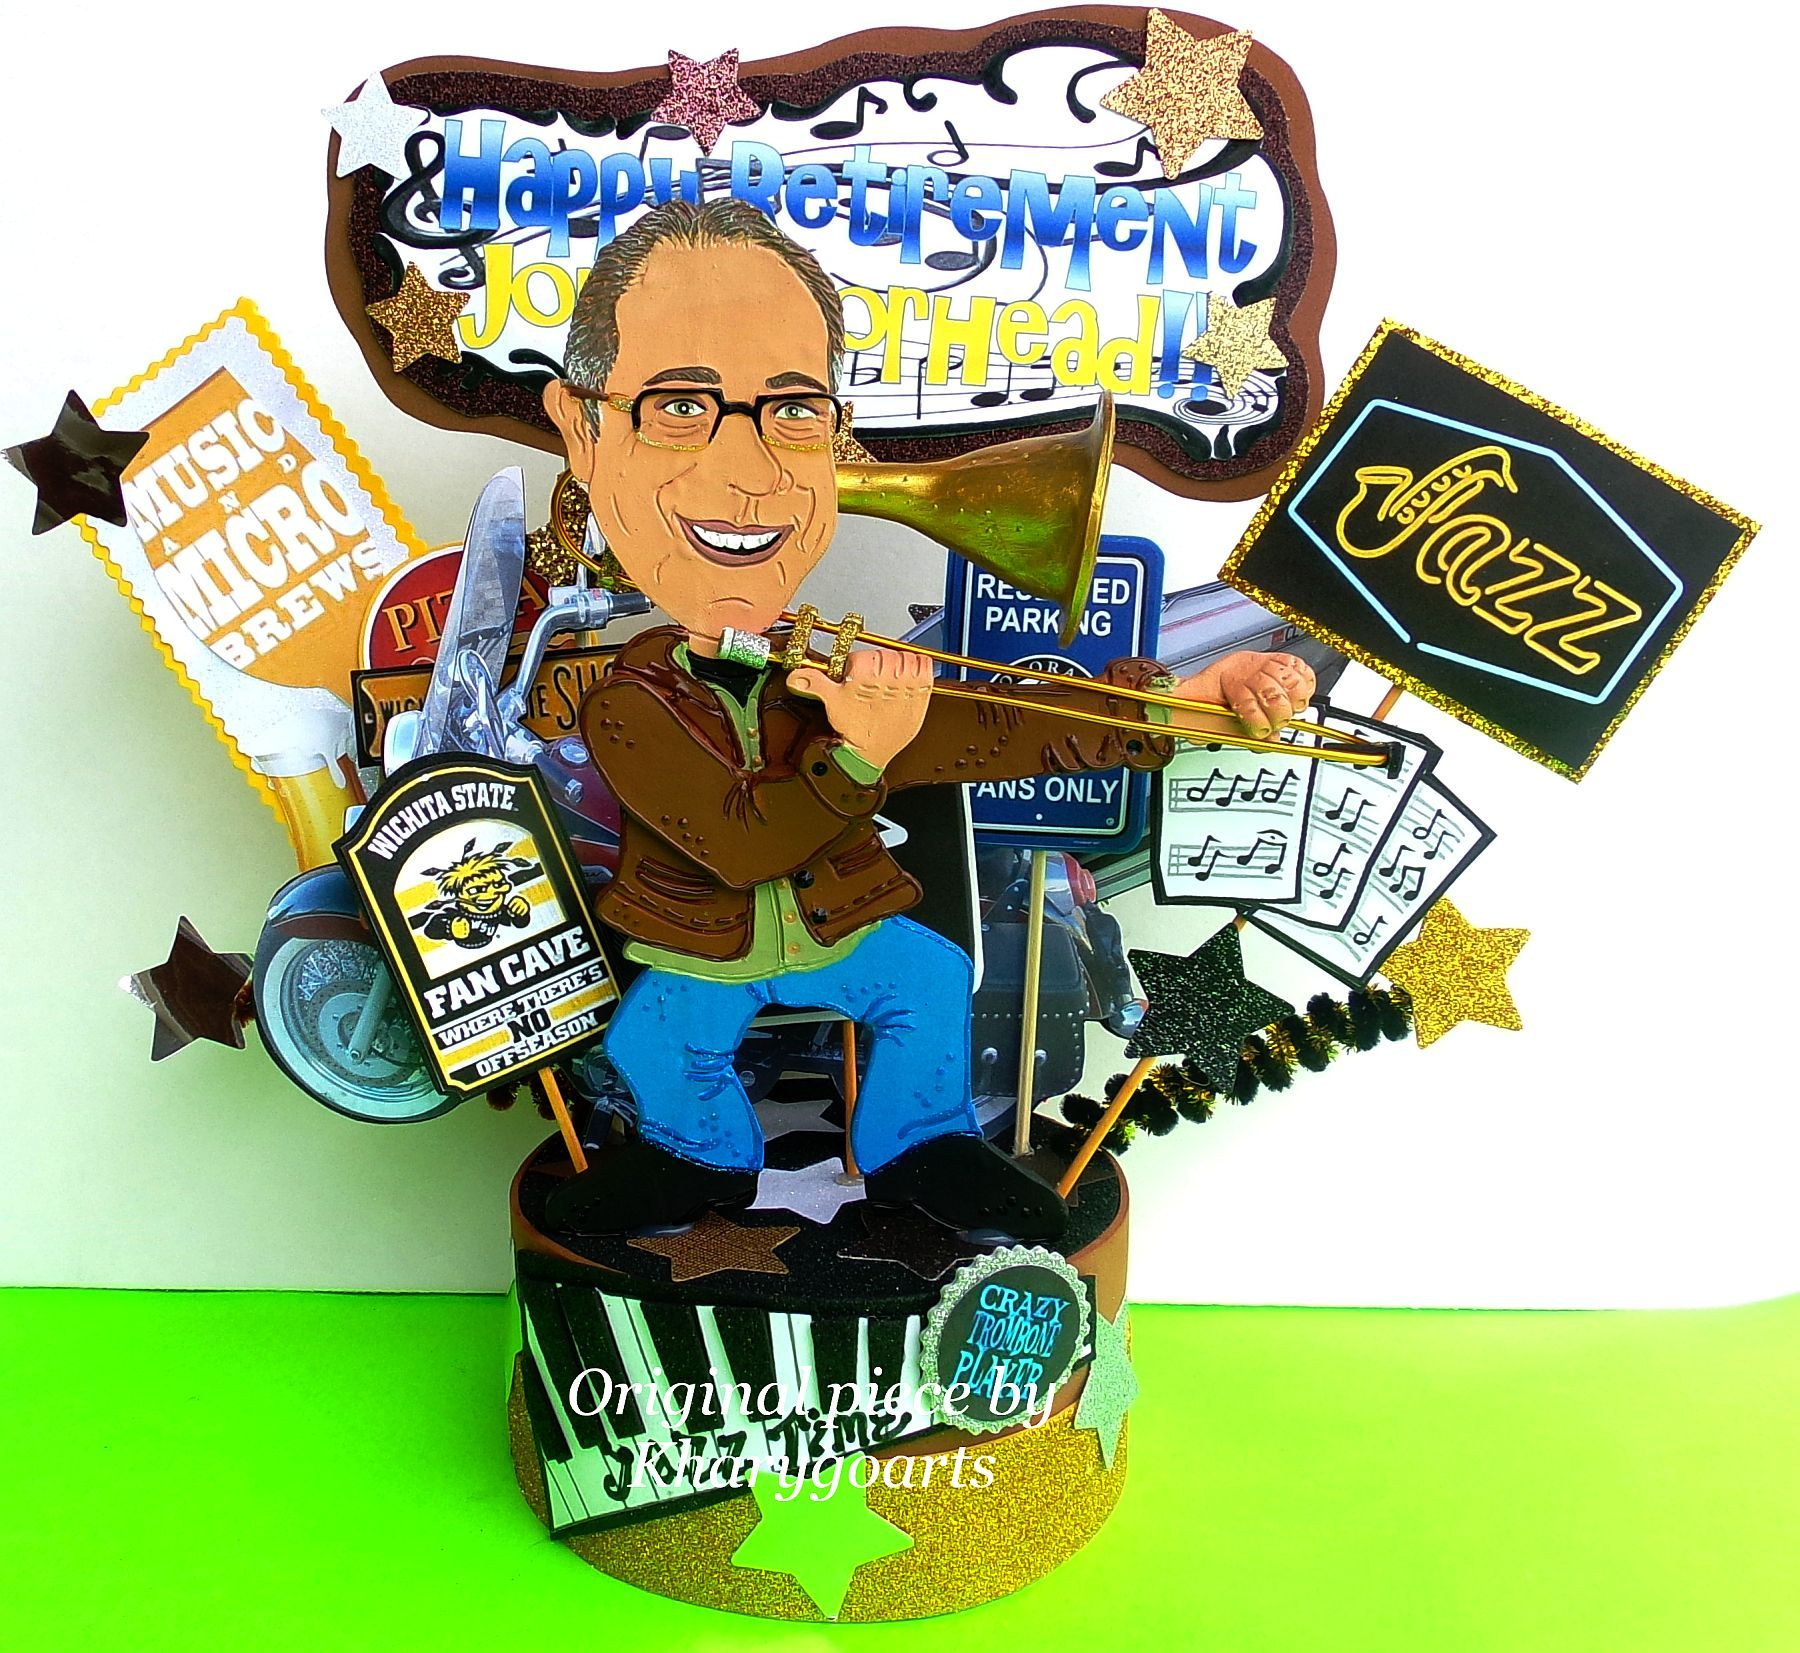 Hand Crafted Artist Composer Singer Actor Look Alike Birthday Cake